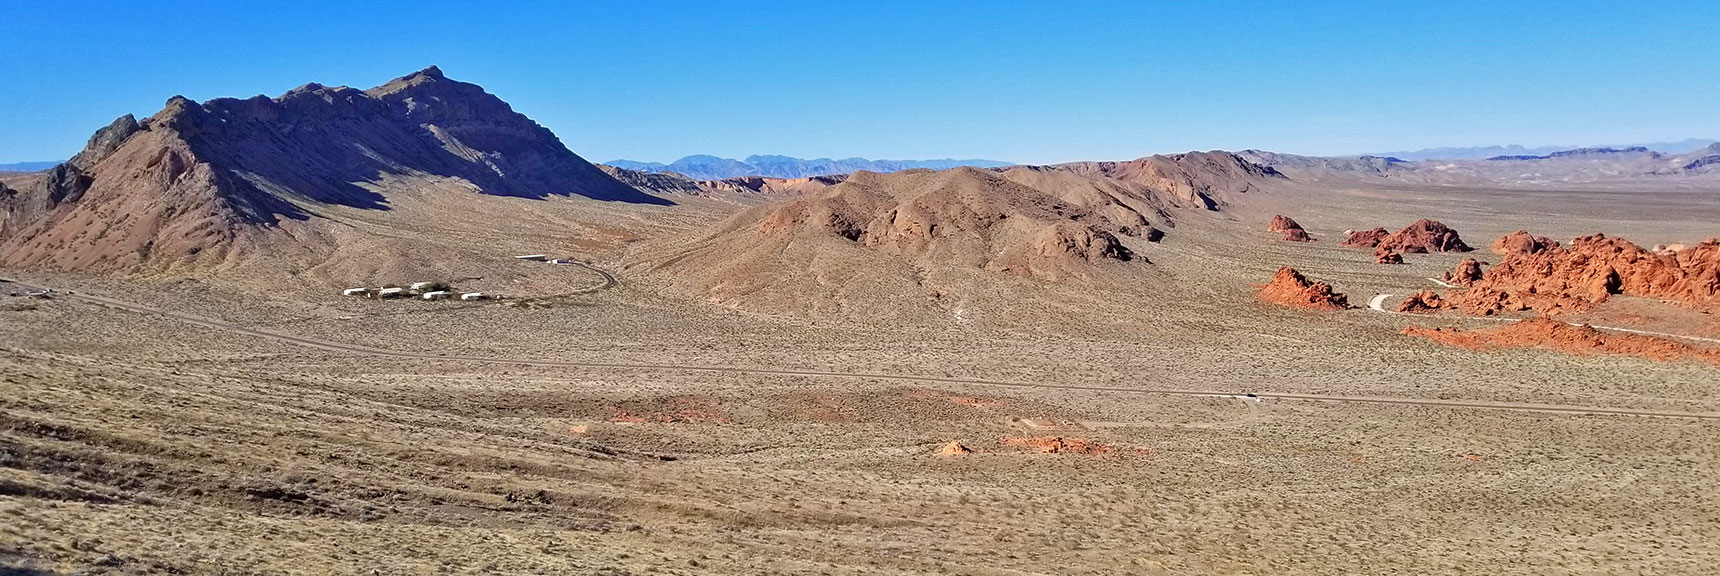 Tip of Arch Rock Area   Valley of Fire State Park, Nevada Panorama Slide 001